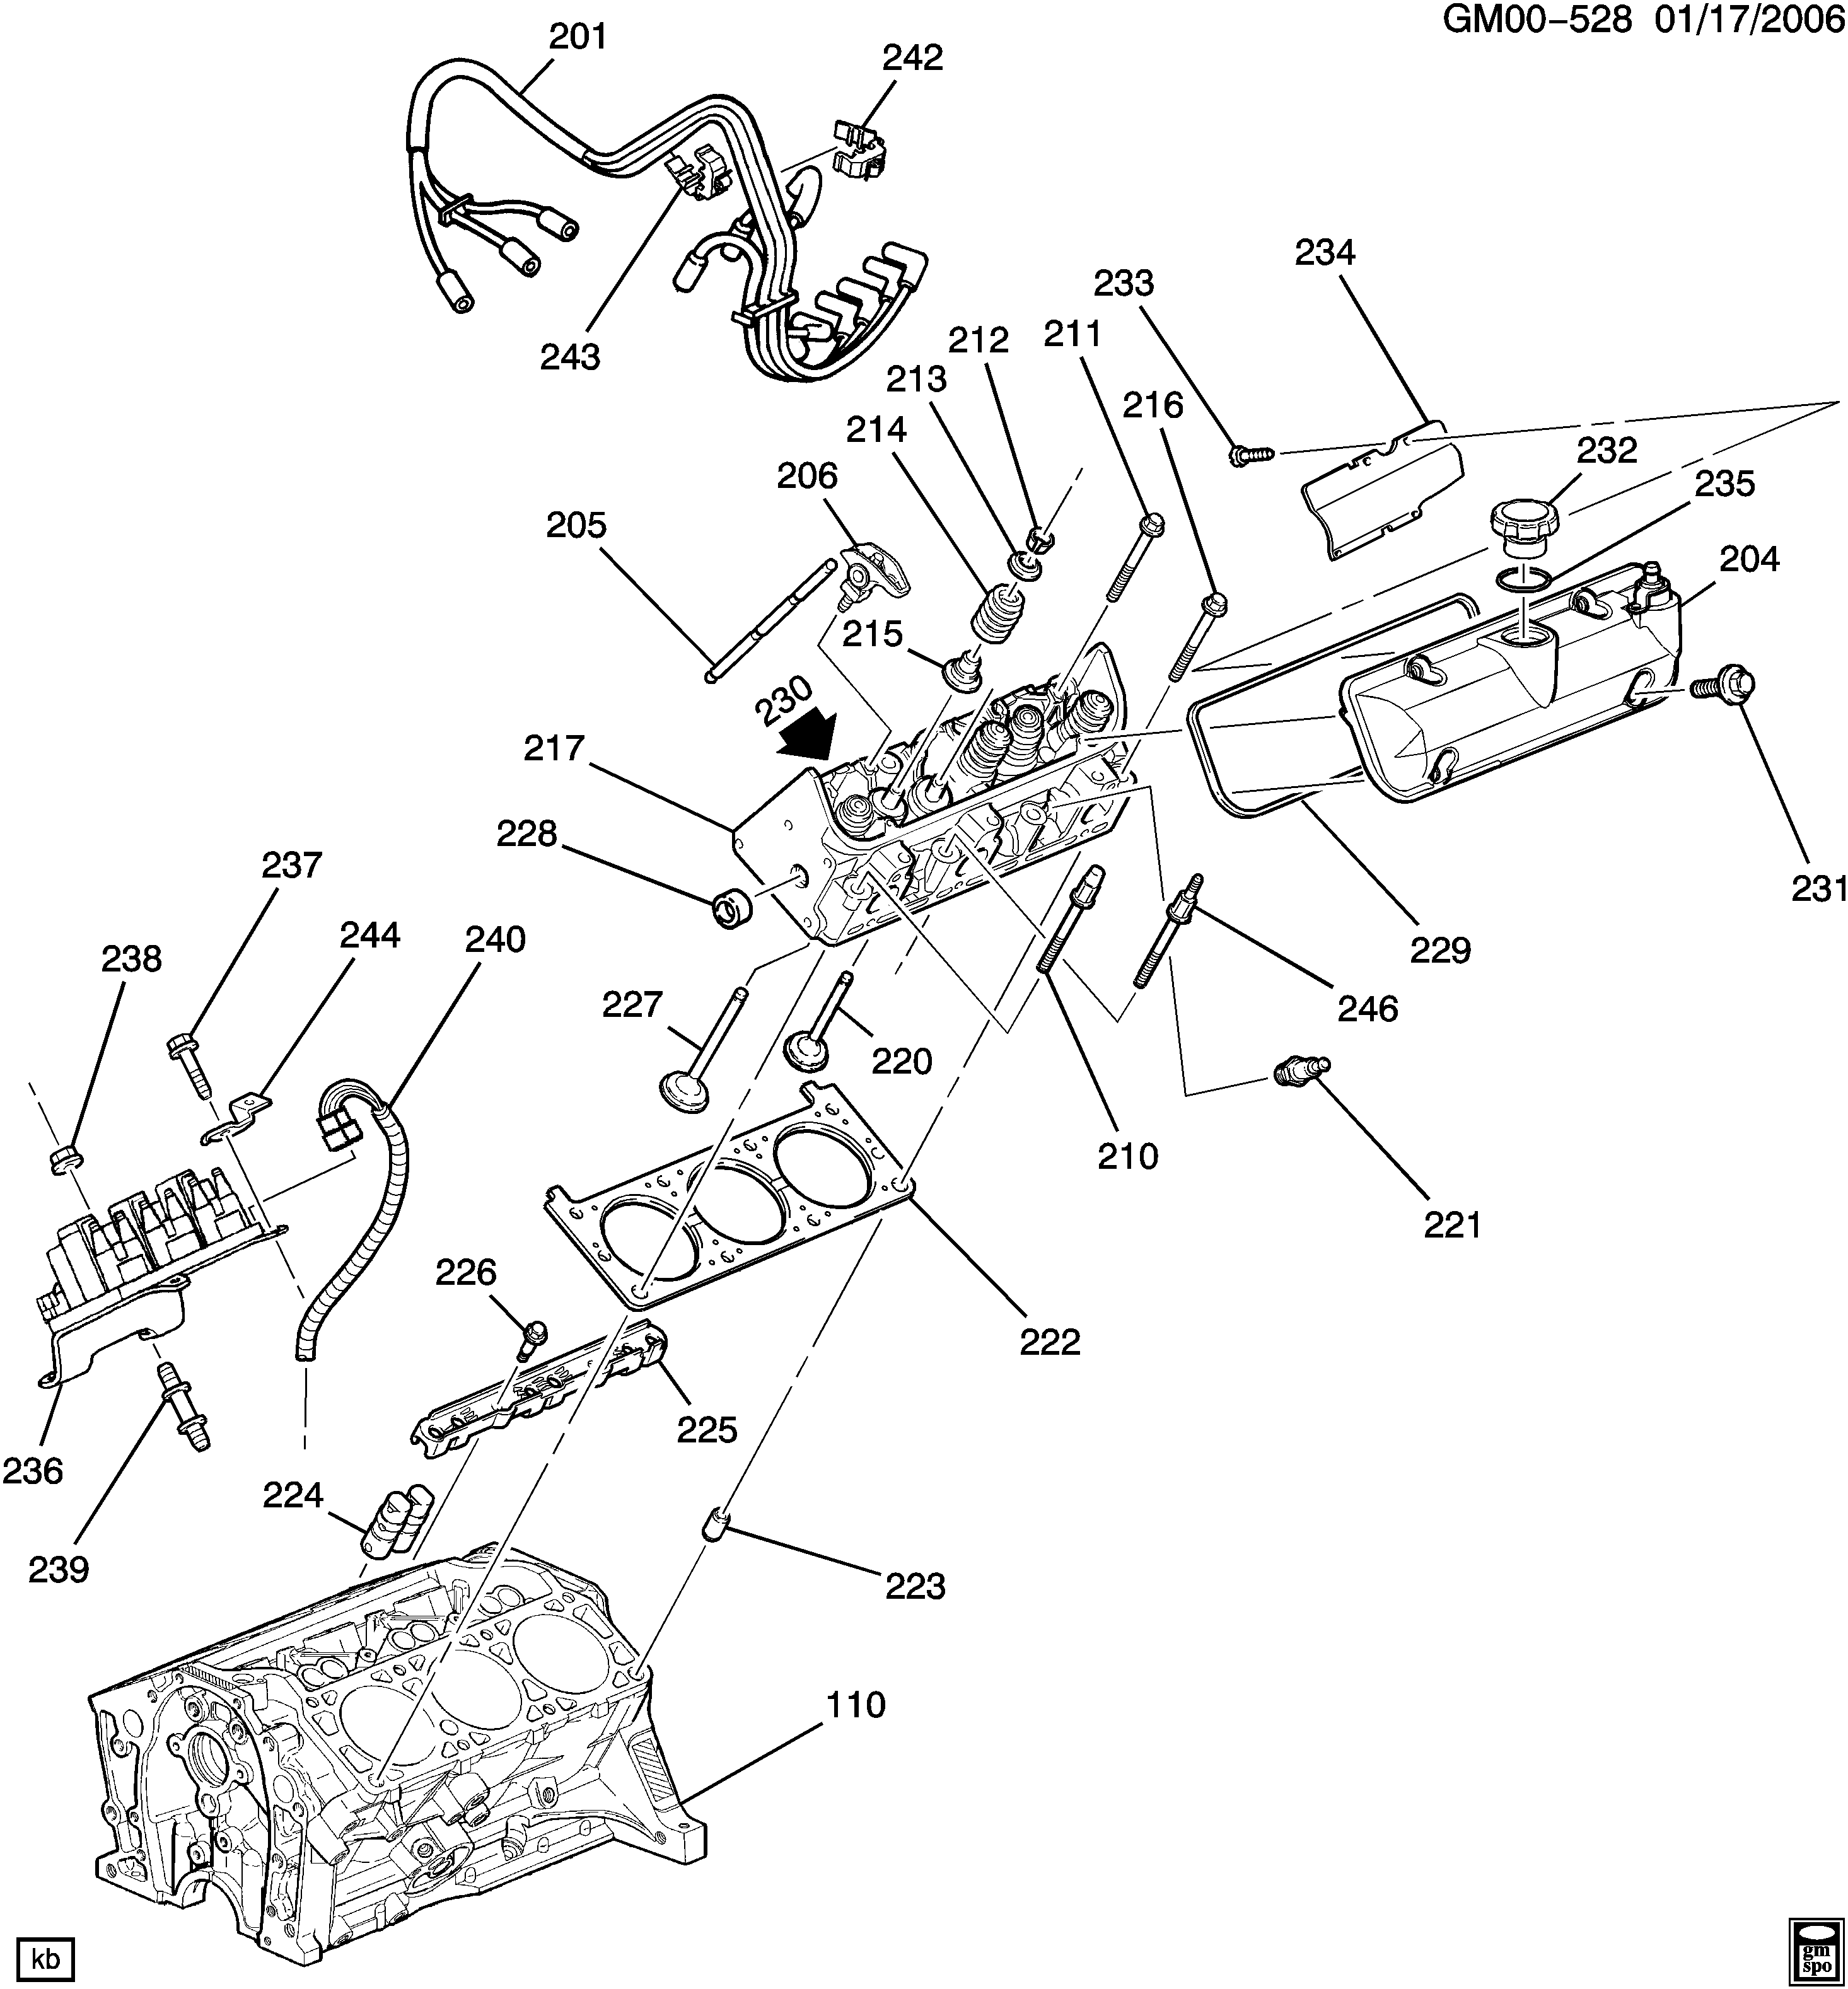 3 1 Liter Gm Engine Diagram